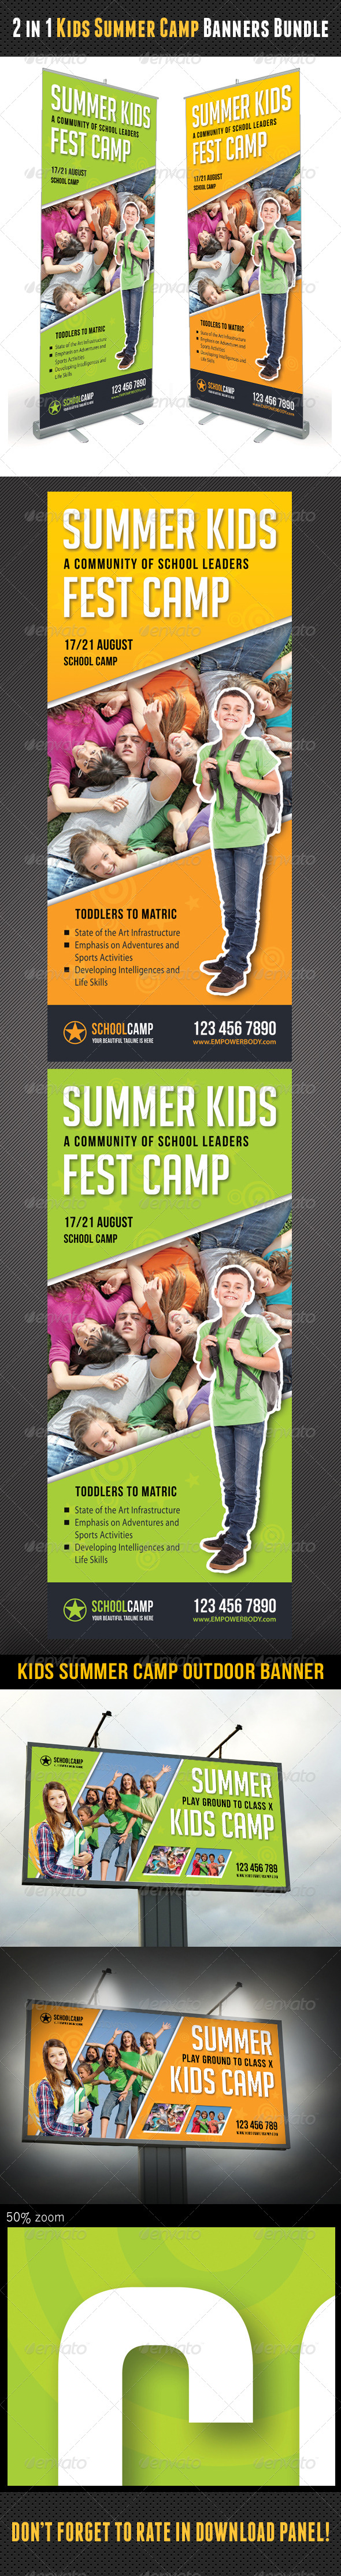 GraphicRiver 2 in 1 Kids Summer Camp Banners Bundle 8184887